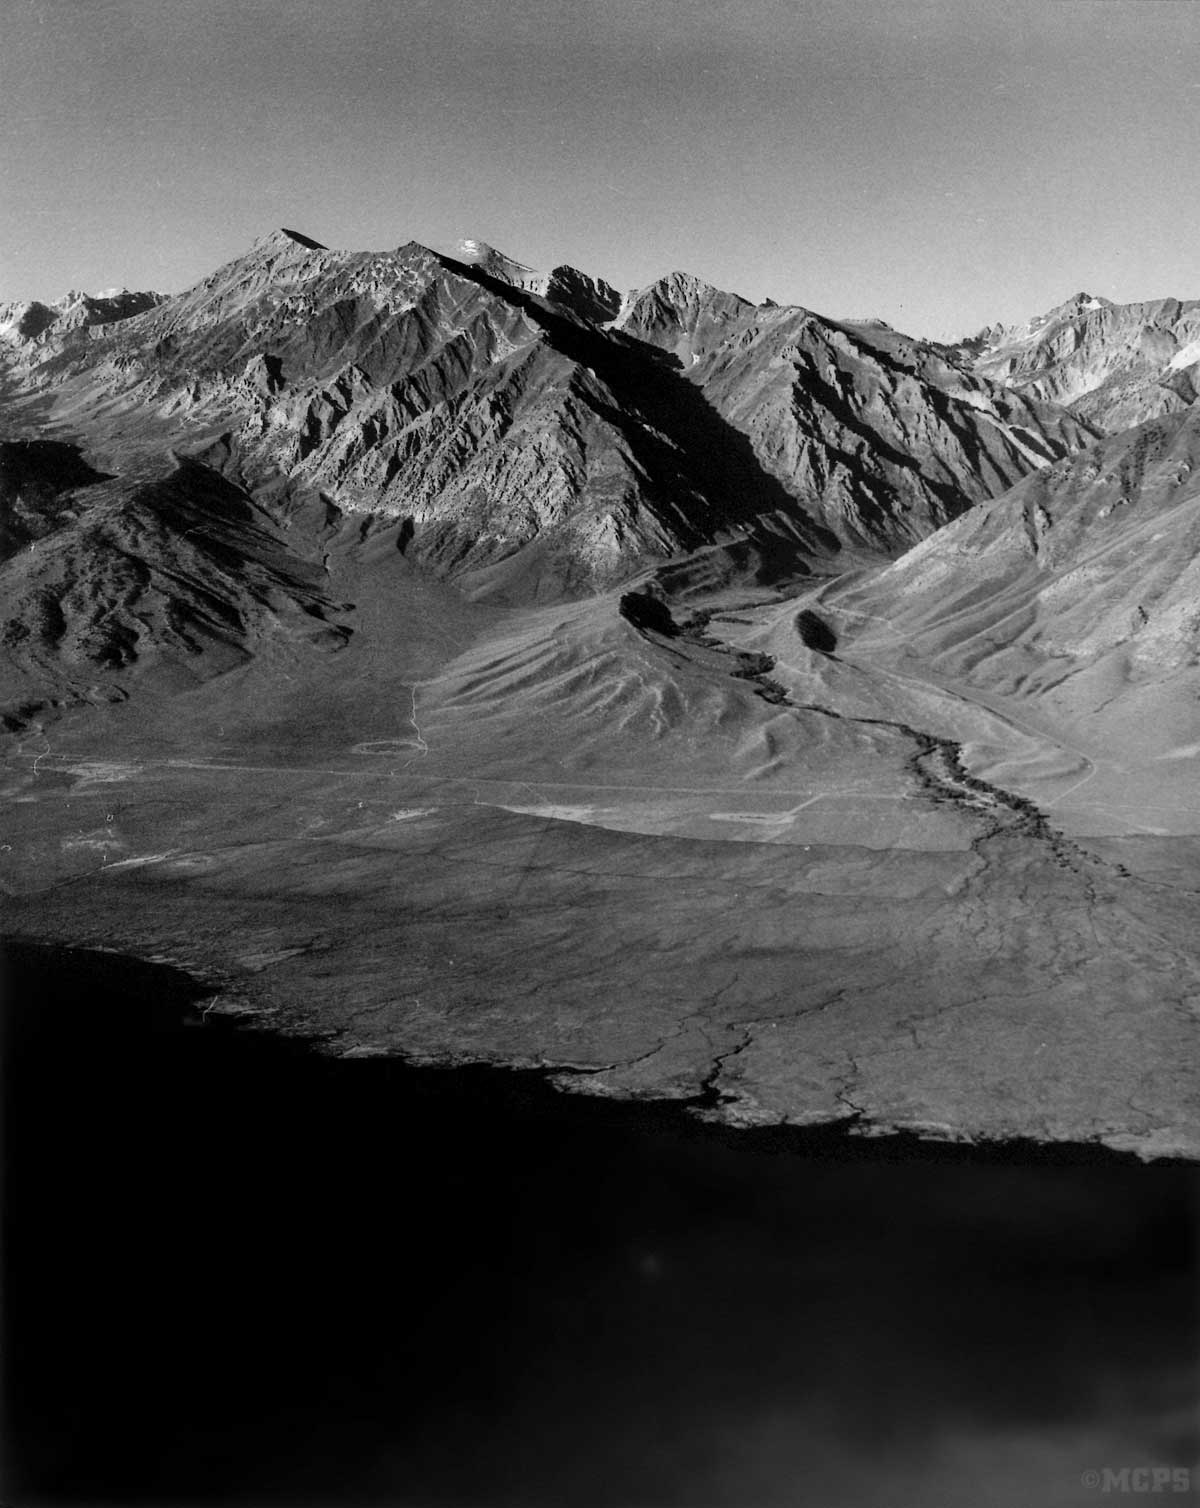 Photo courtesy of Margaret Bailey. Photo taken by her father, UCLA Geology professor in the 1950s.